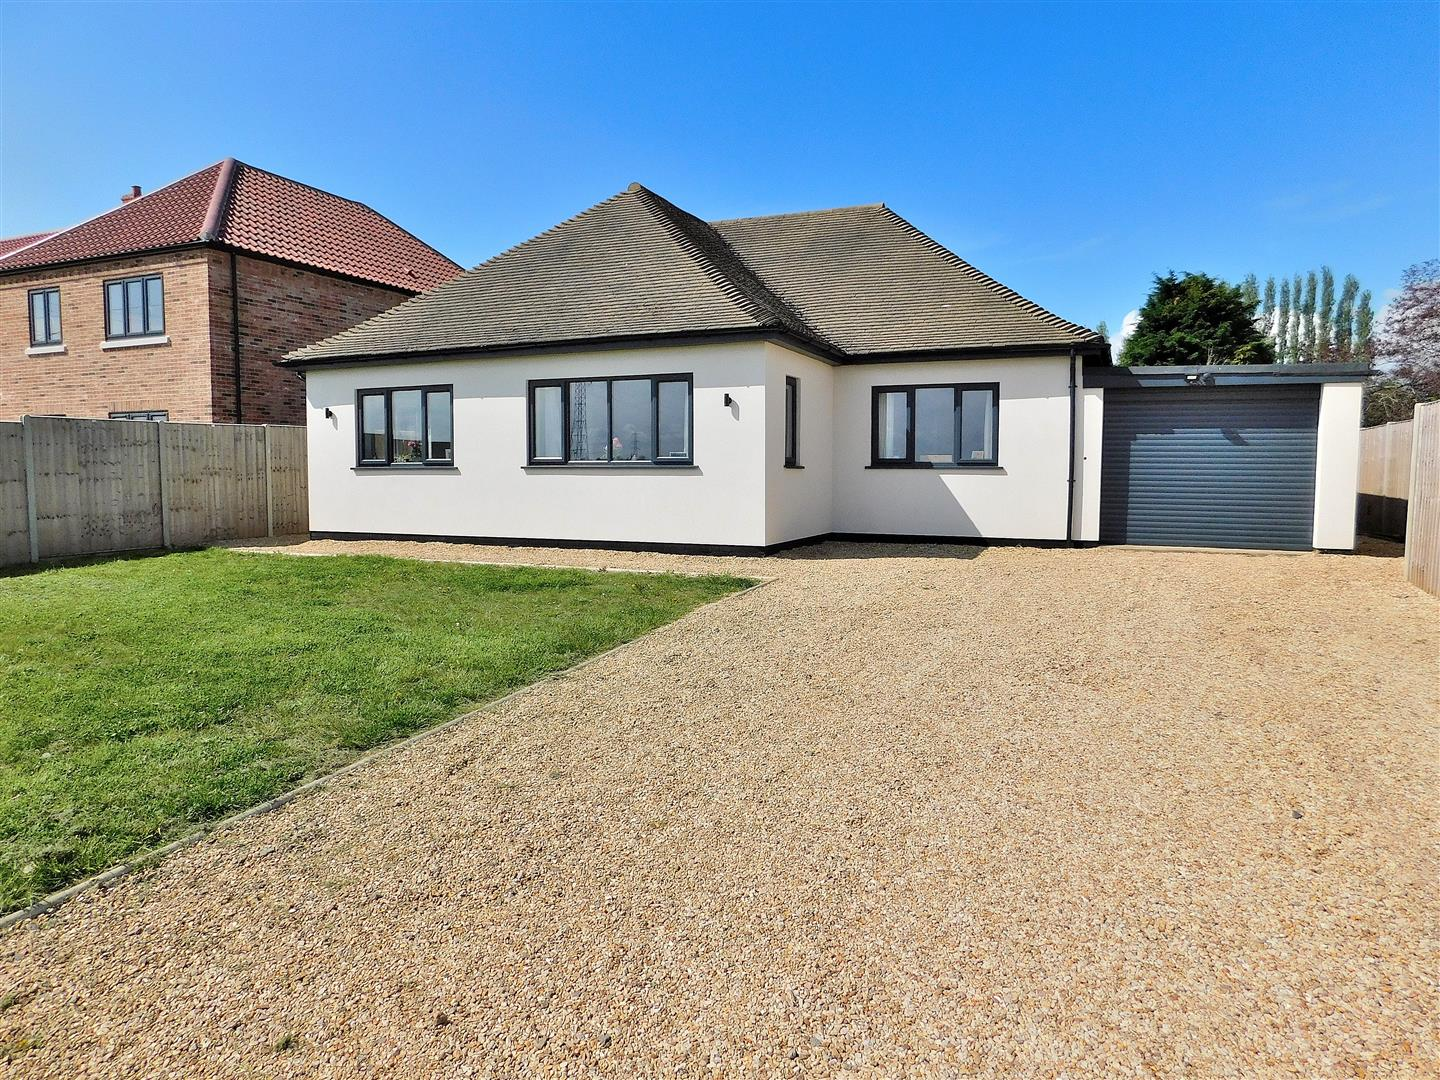 3 bed detached bungalow for sale in Mill Road, Wisbech - Property Image 1